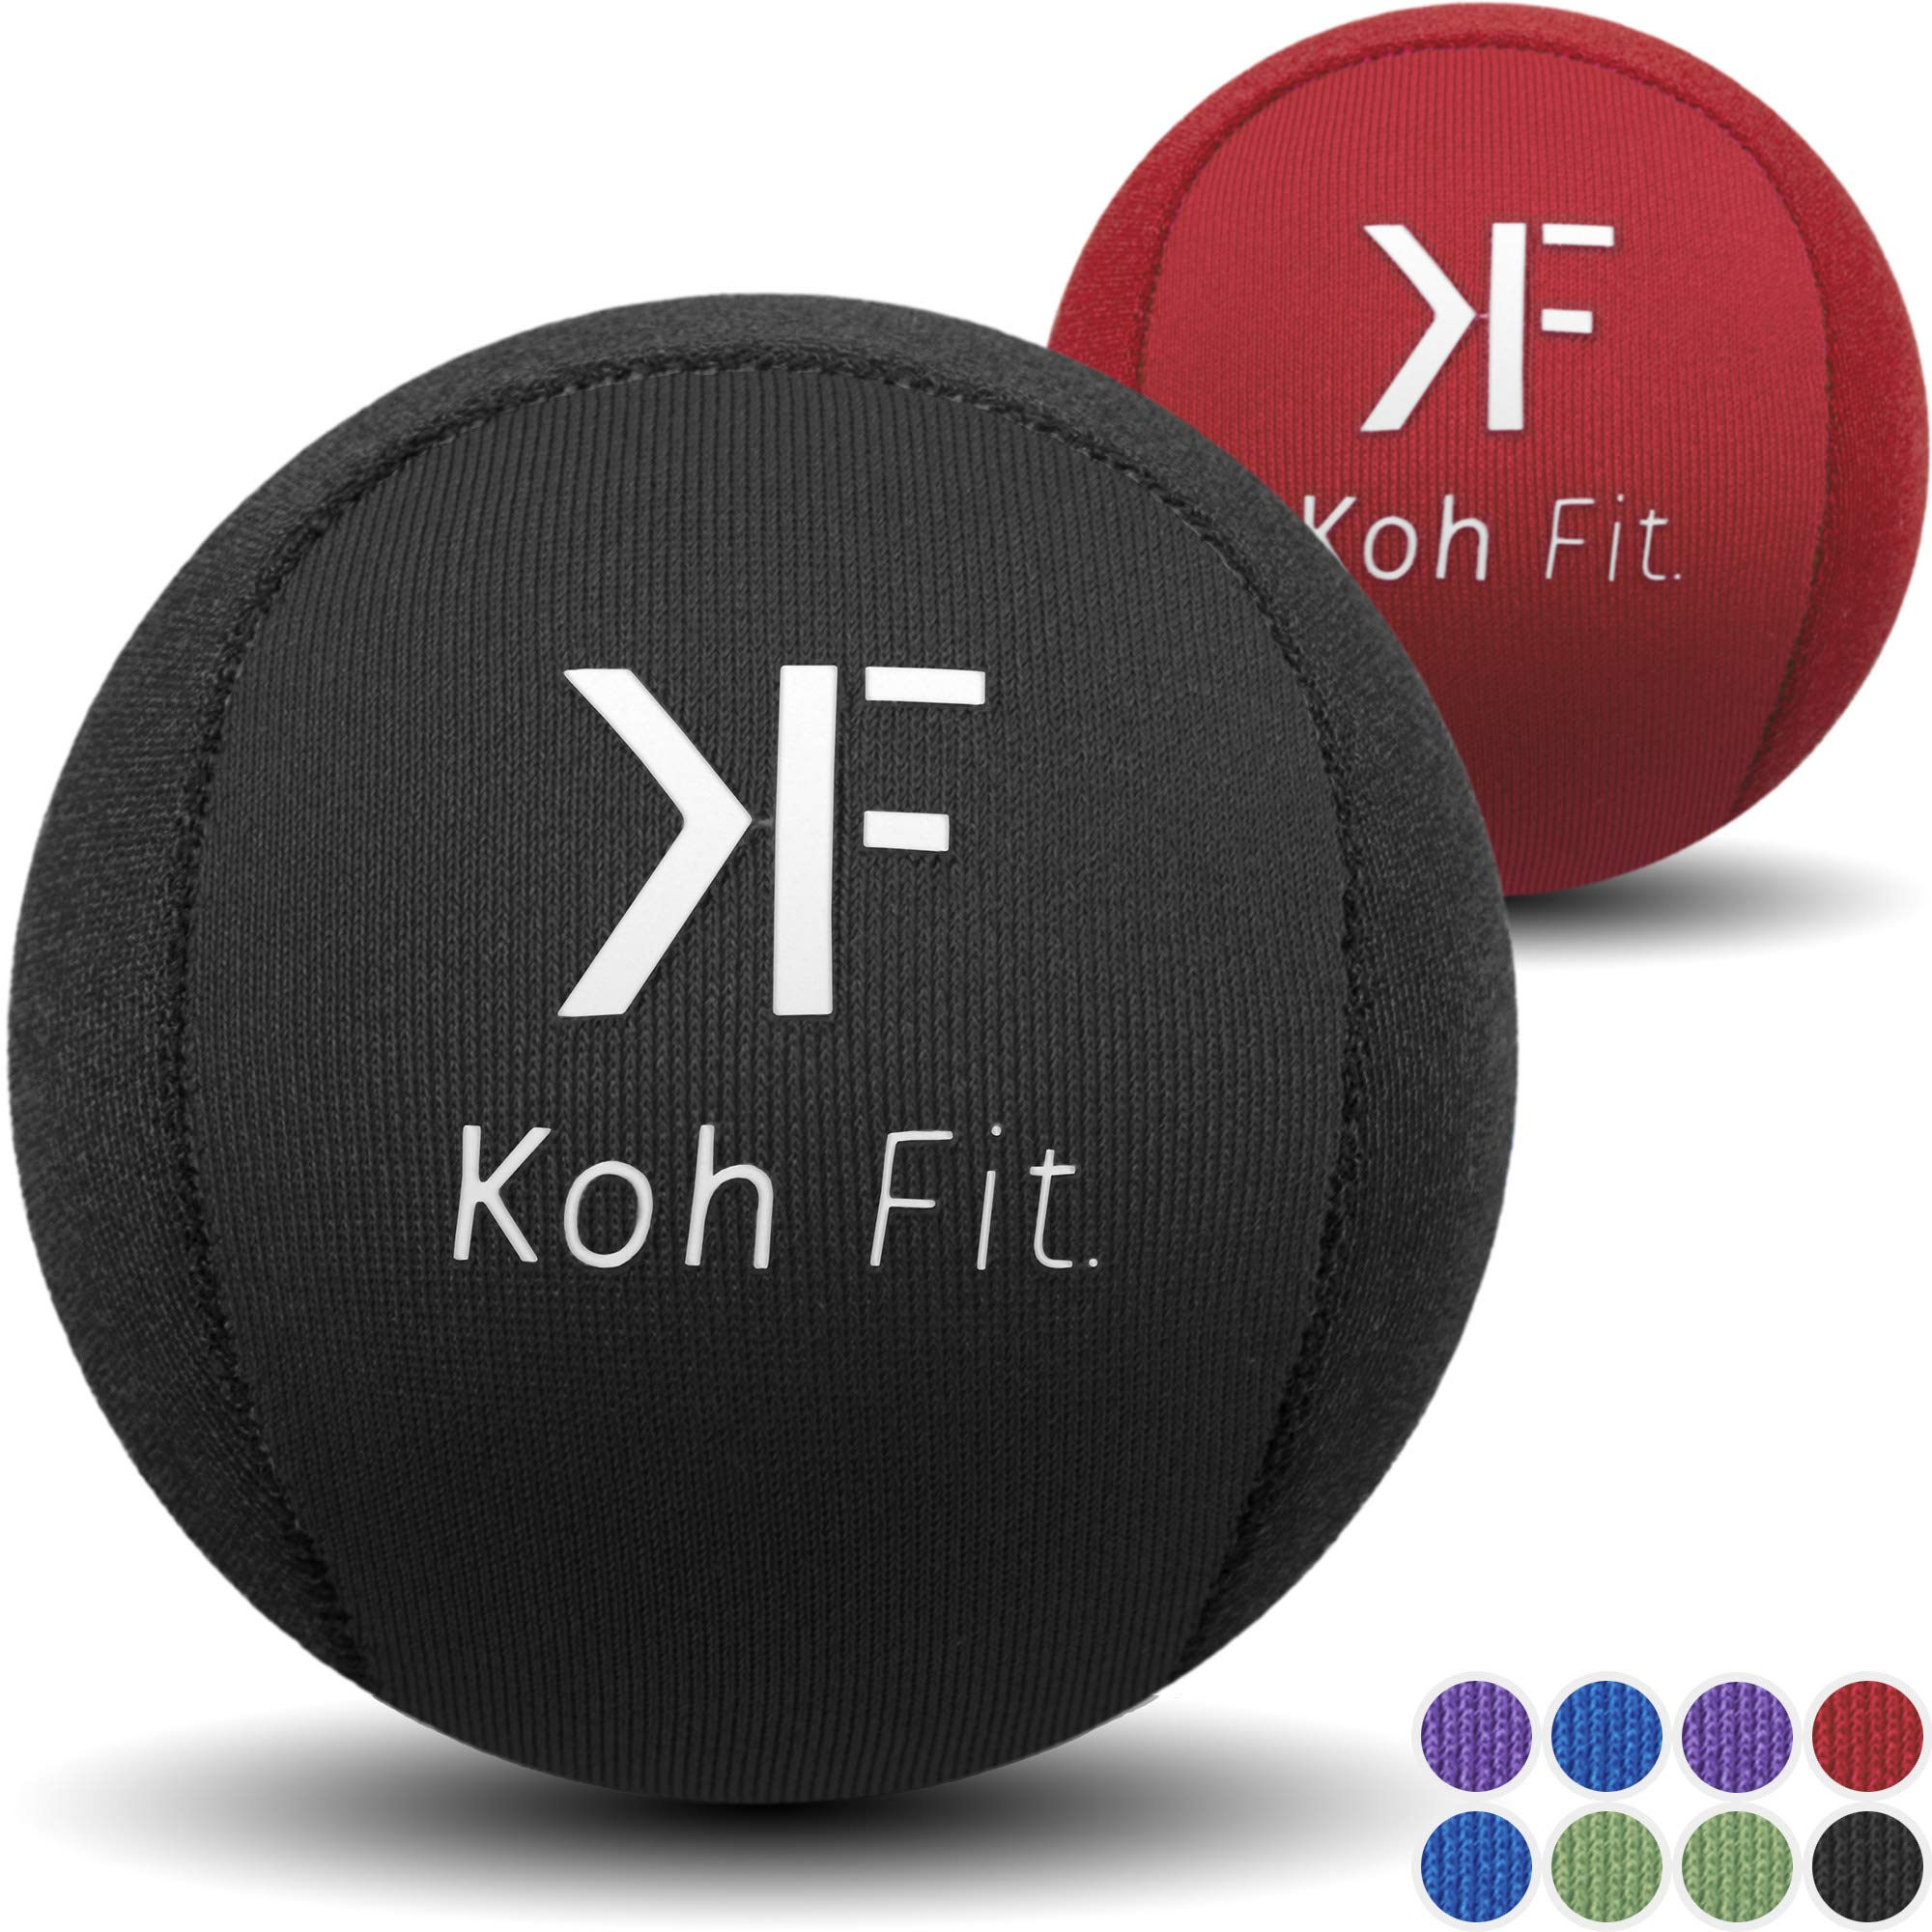 Koh Fit Stress Ball Multipacks - Stress Reliever Squeeze Balls - 2 Bonus Ebooks: Hand Therapy Exercise Guide + Stress Relief Guide